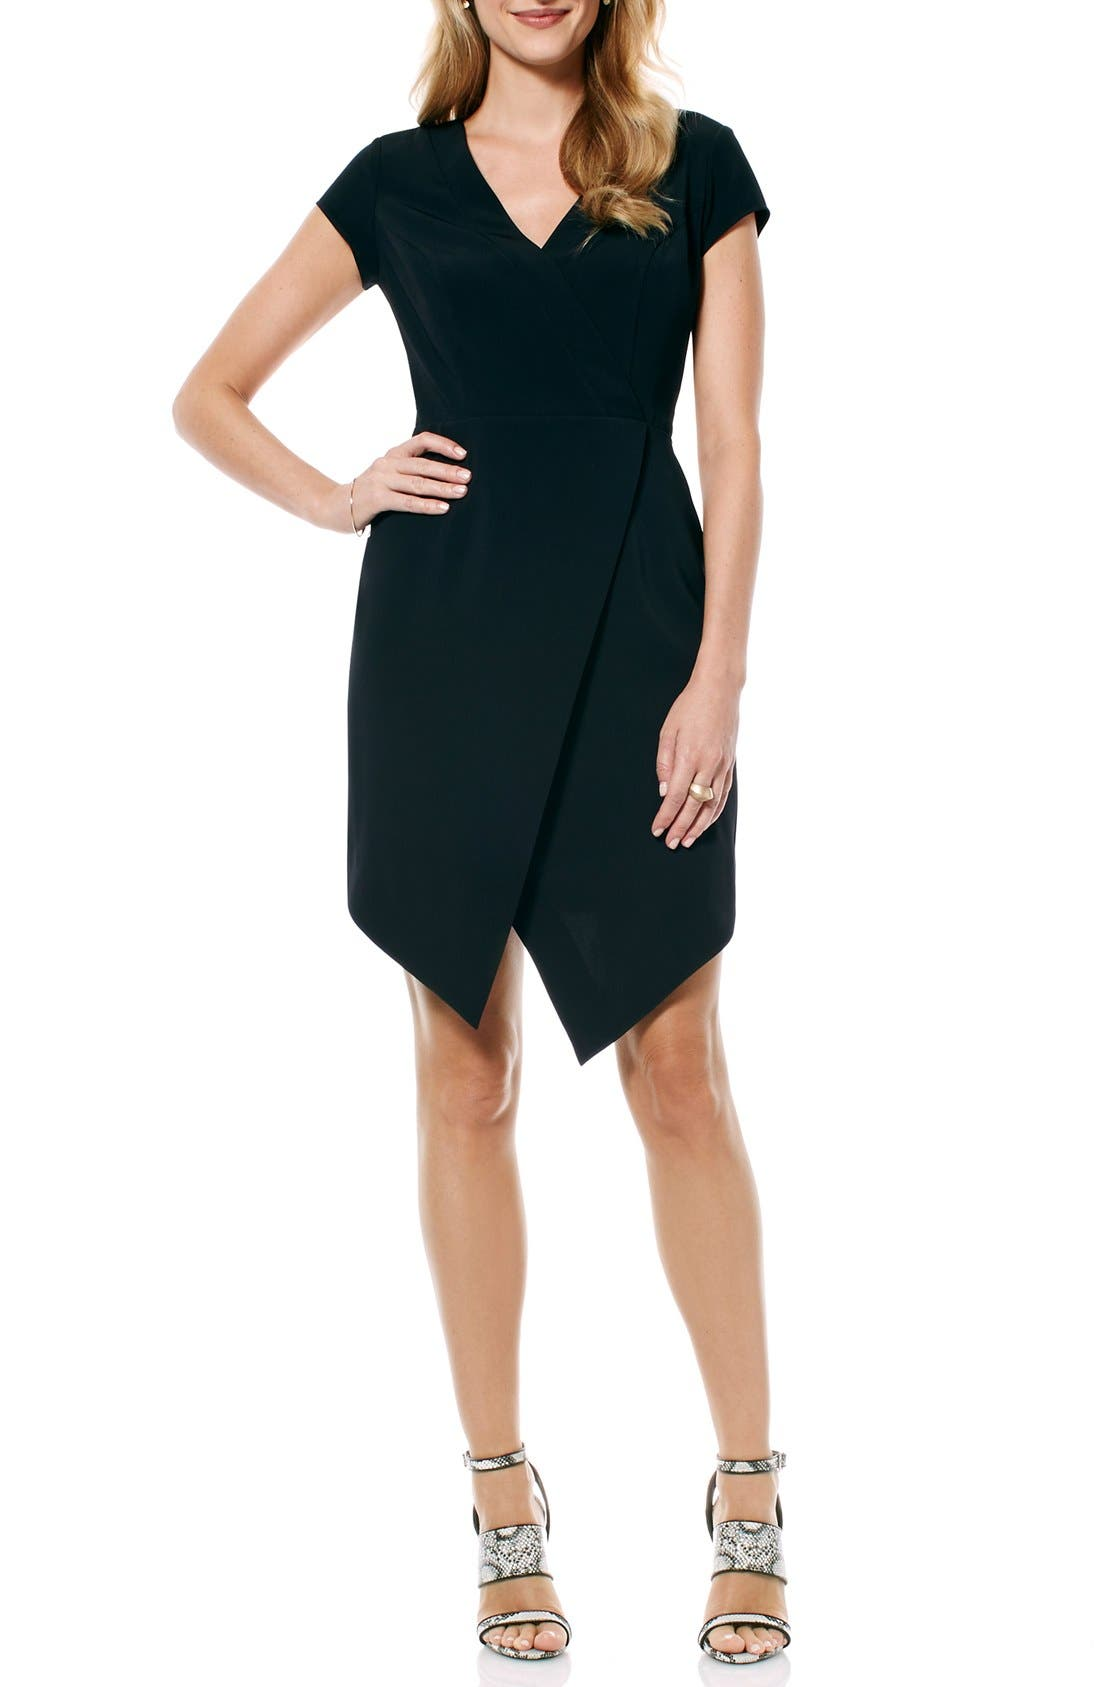 Alternate Image 1 Selected - Laundry by Shelli Segal Crepe Faux Wrap Dress